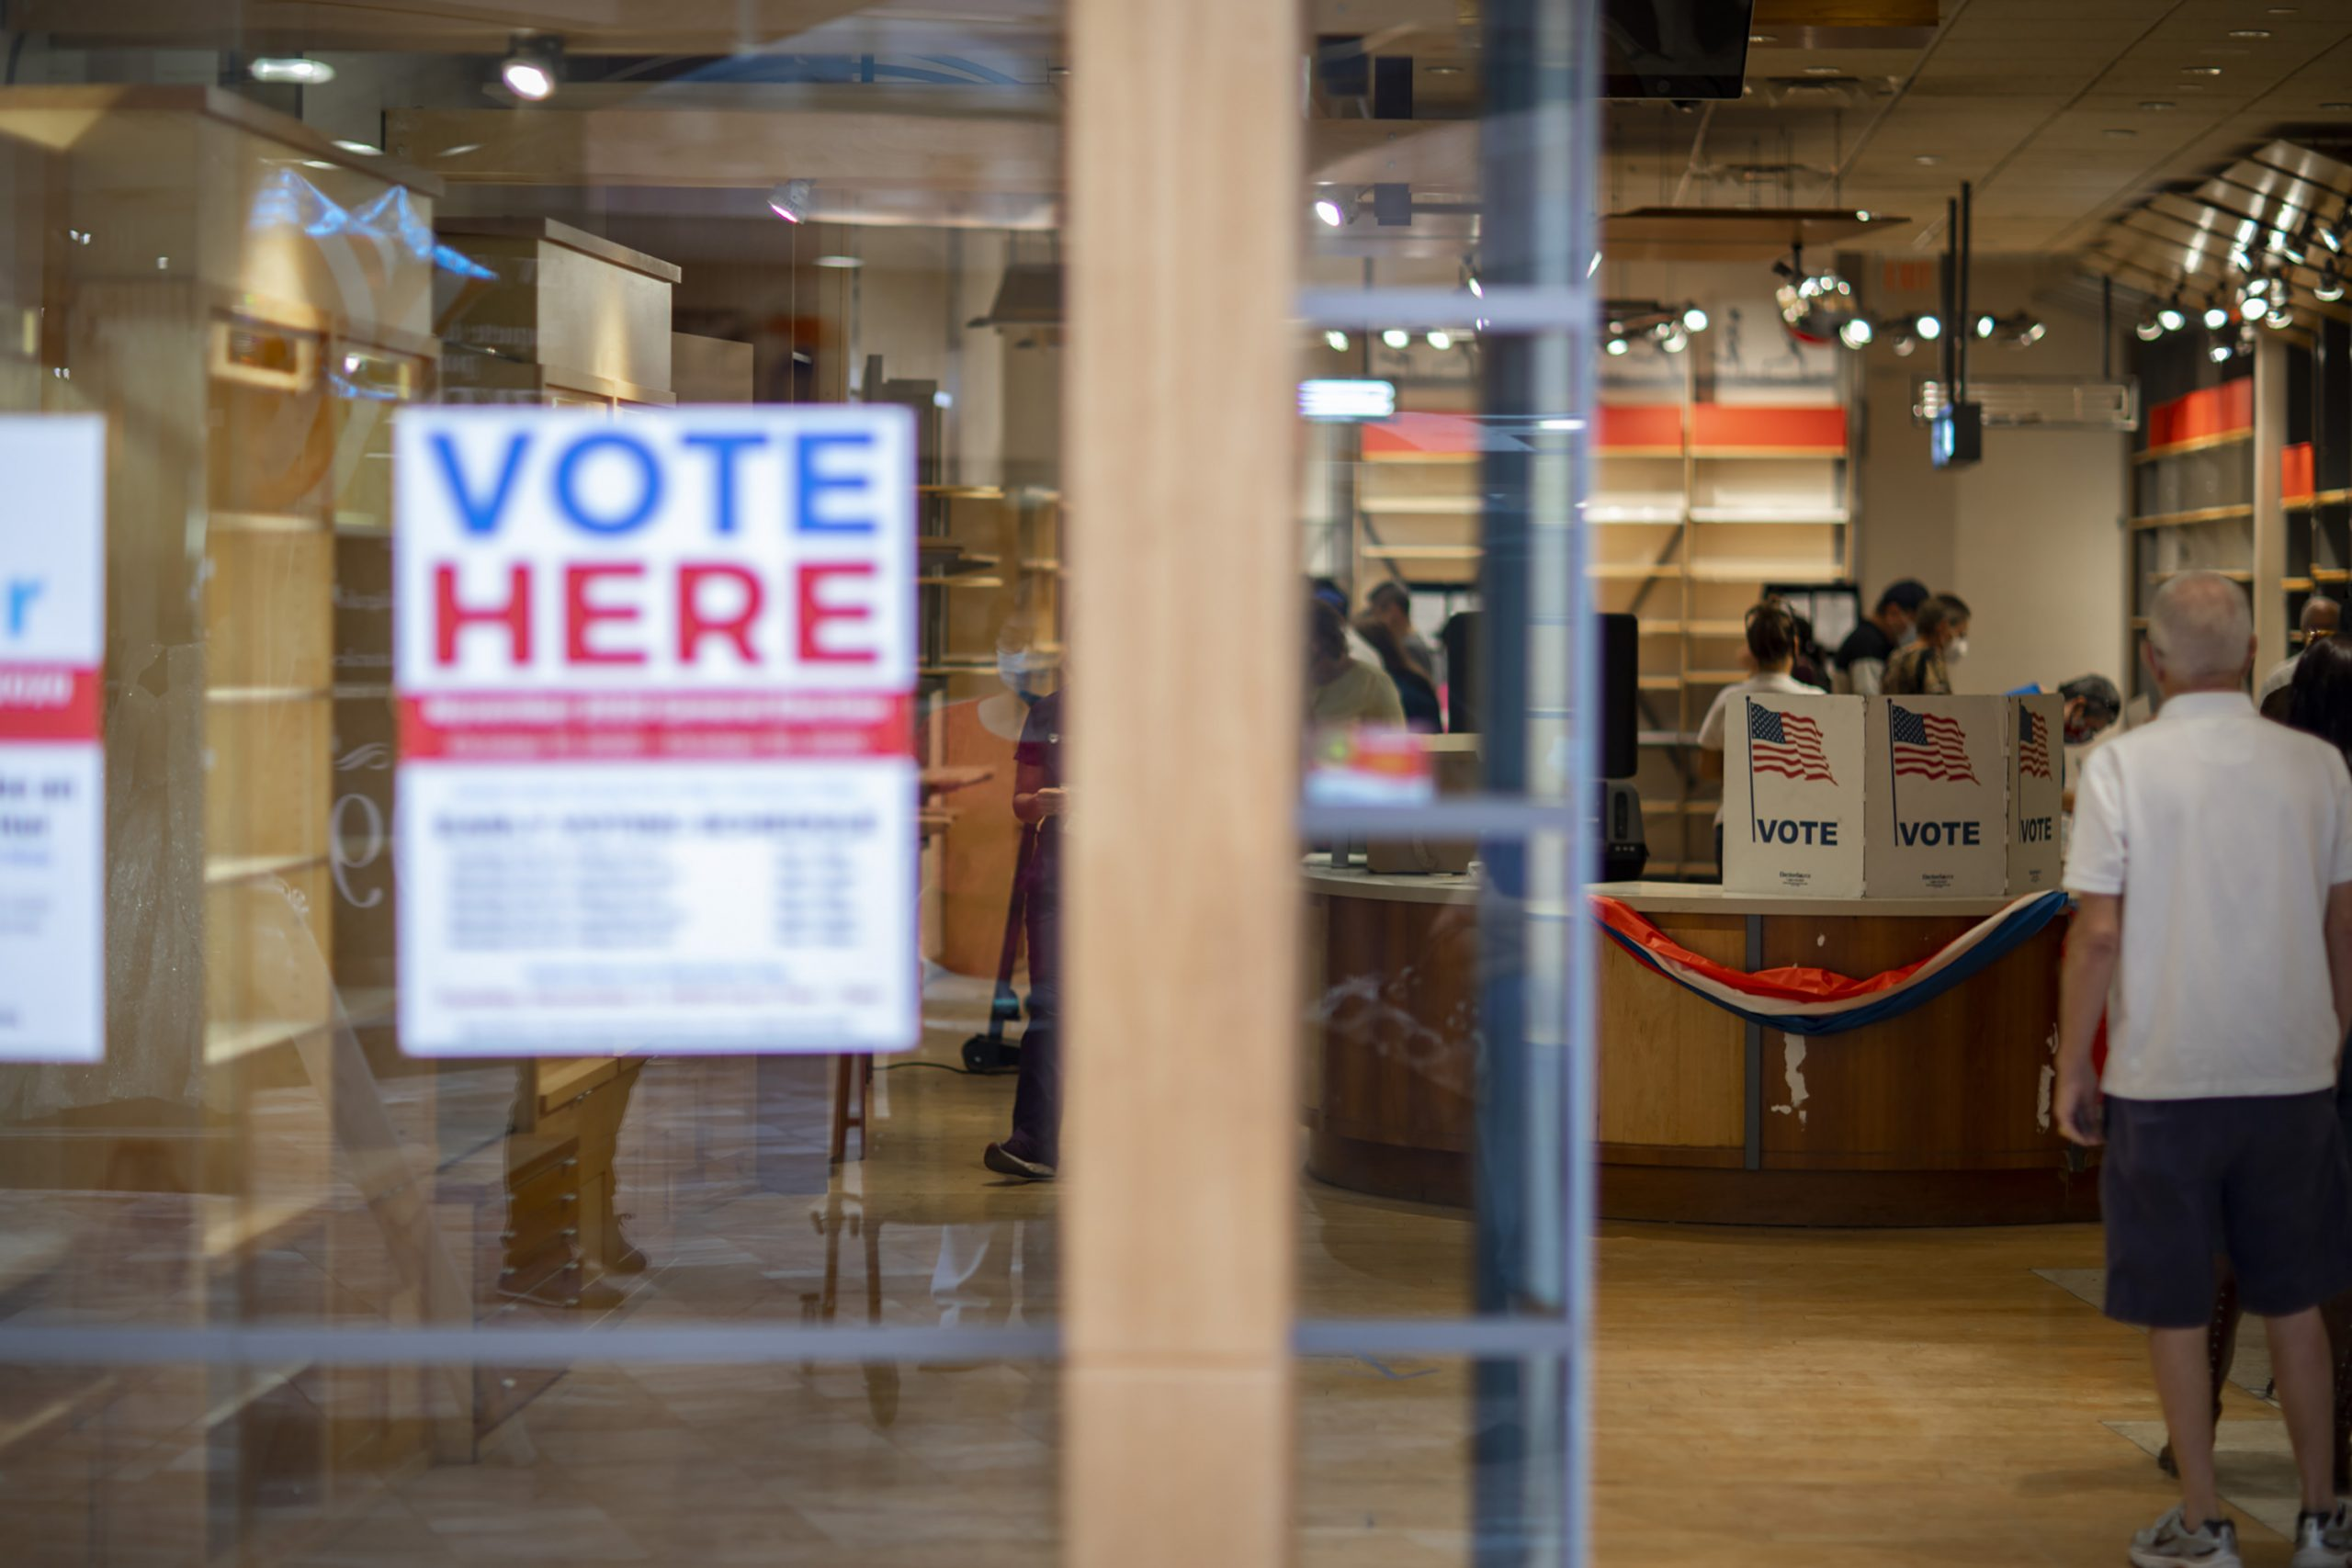 Day one of early voting in El Paso at the Sunland Park Mall indoor voting site on Oct. 13, 2020.